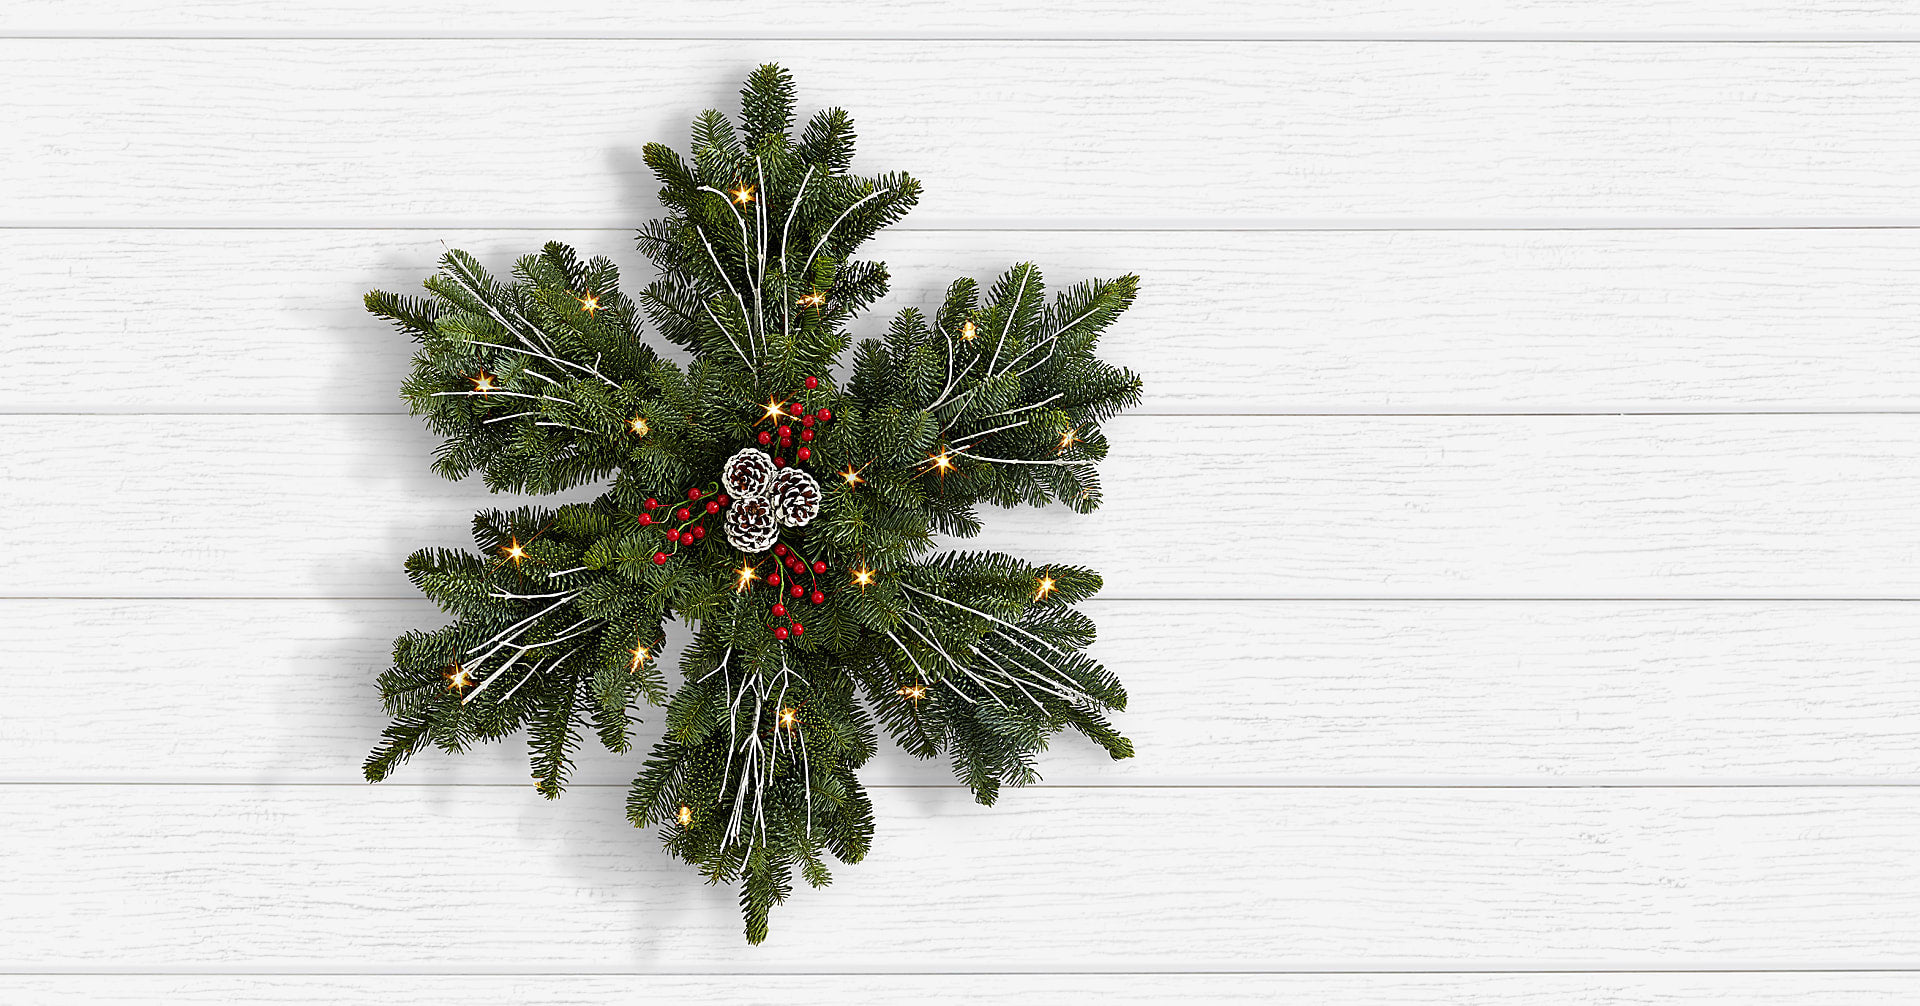 Frosted Fir Wreath with Lights - Image 1 Of 2